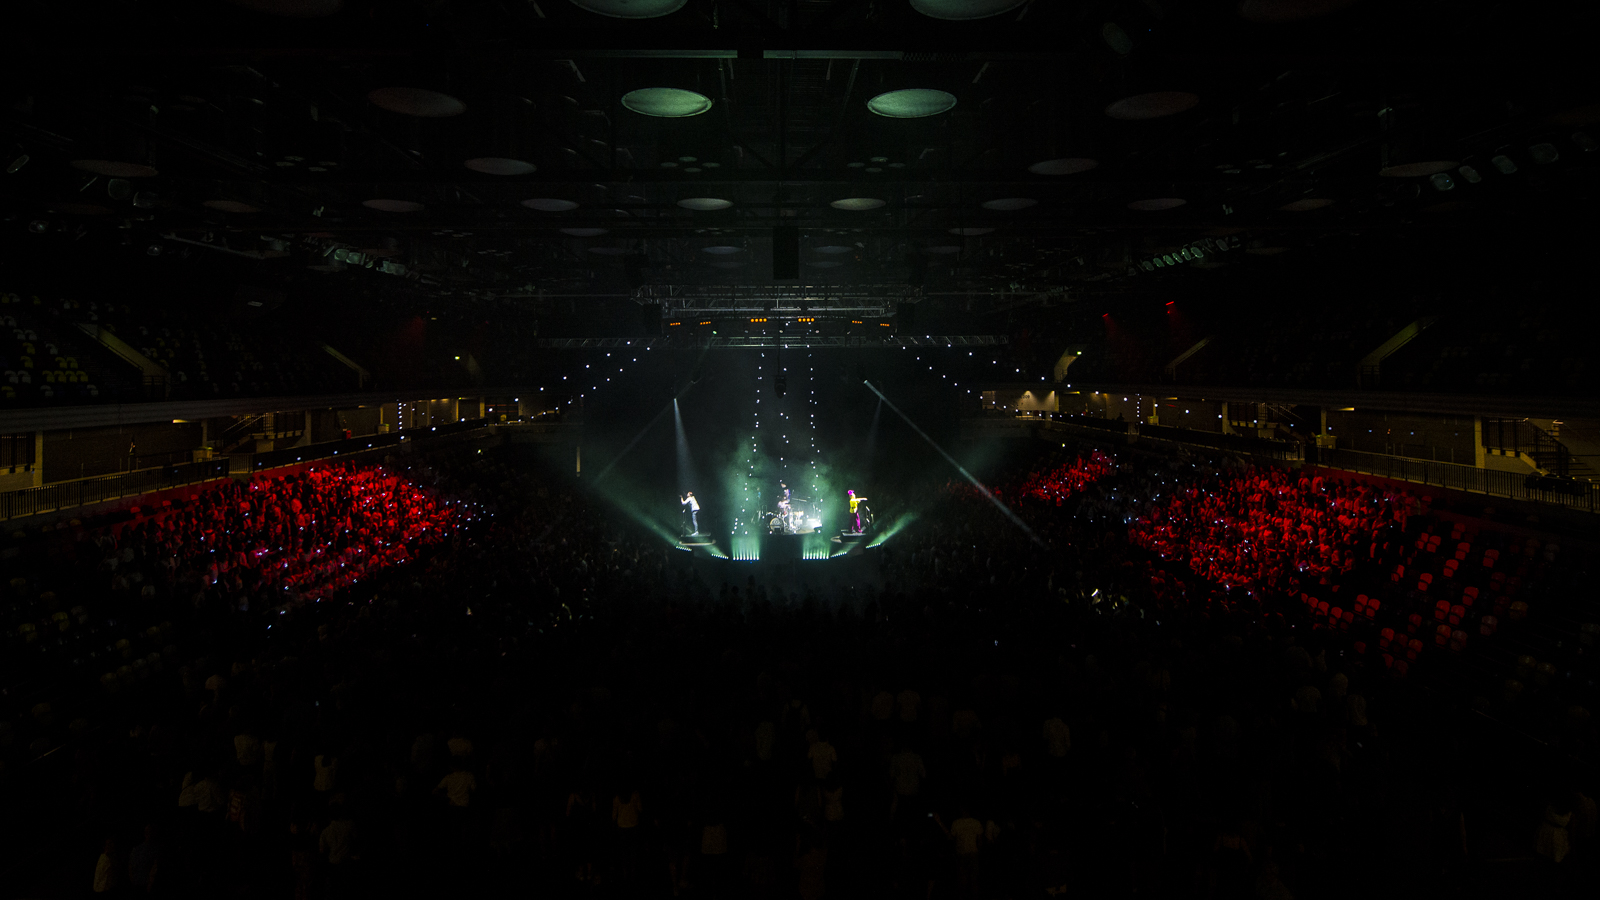 copperbox_20-4-18-image-180.jpg